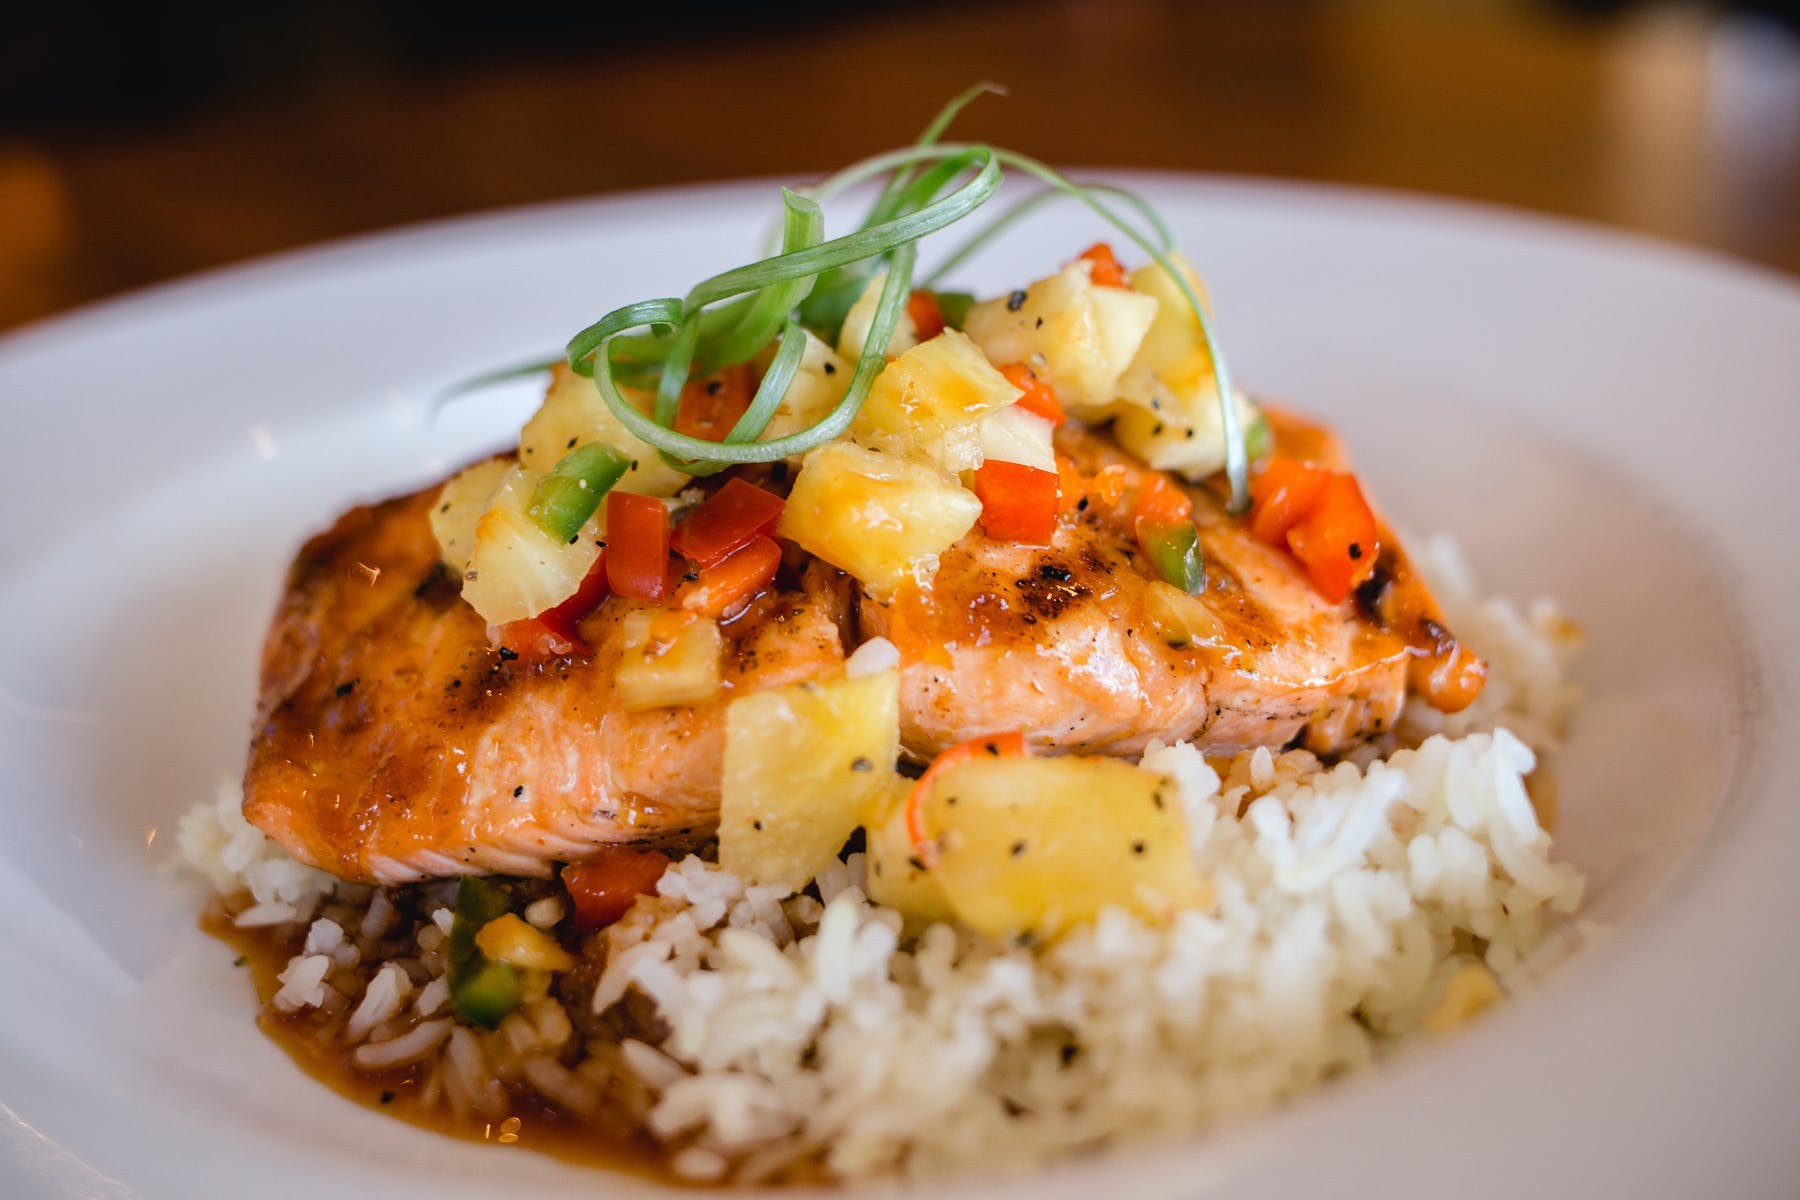 salmon served over a pile of rice